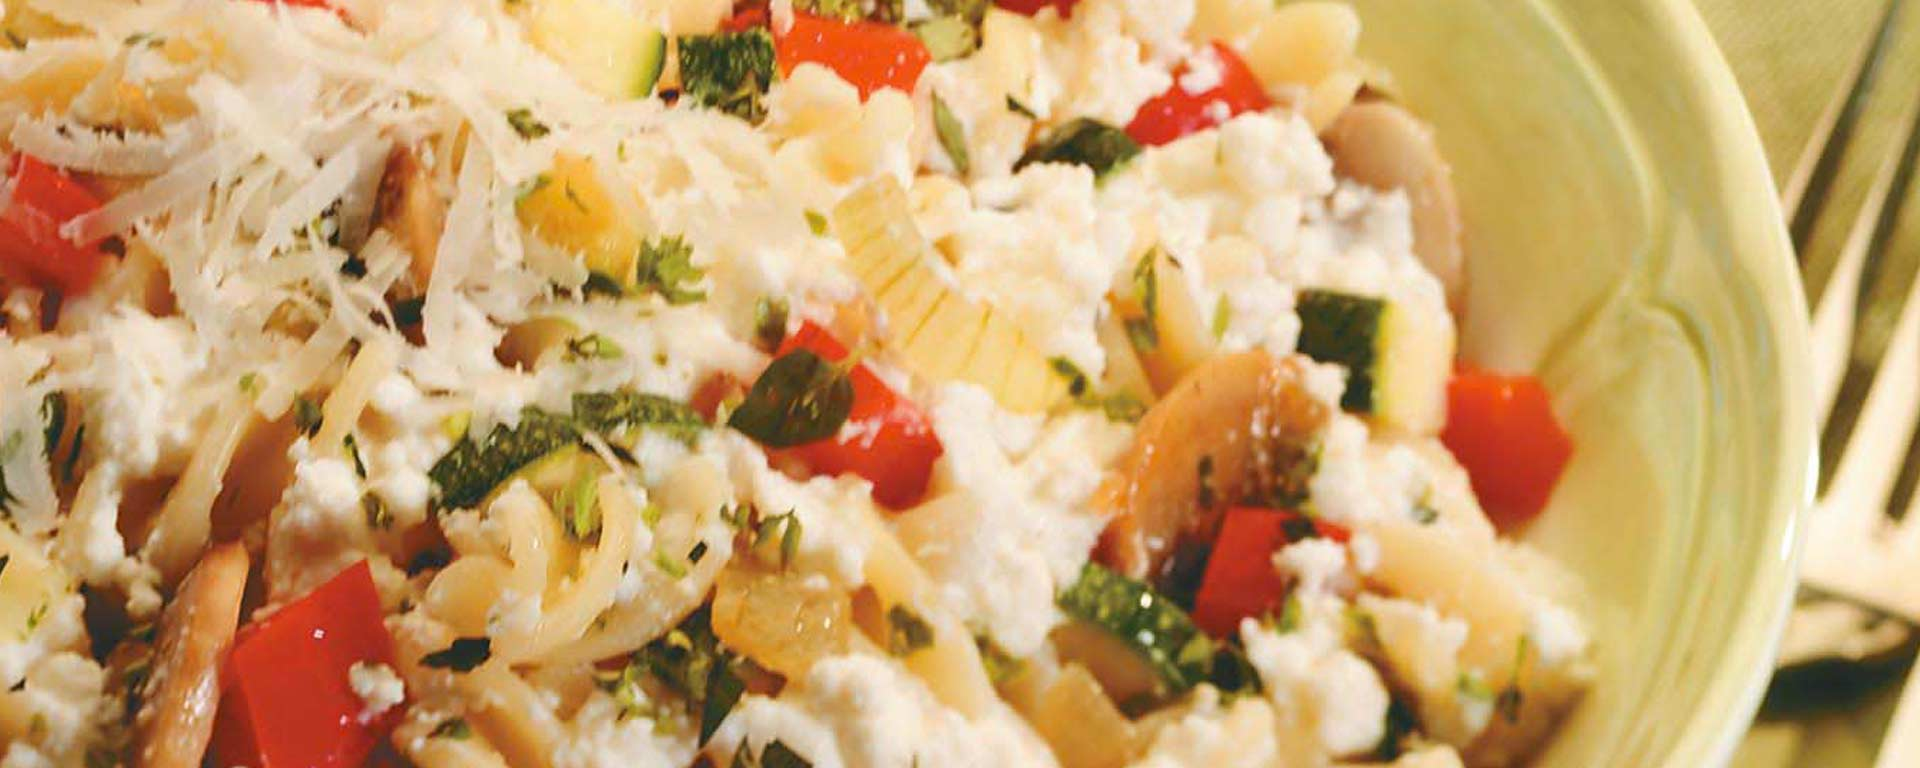 Photo for - Herbed Cottage Cheese Primavera with Pasta